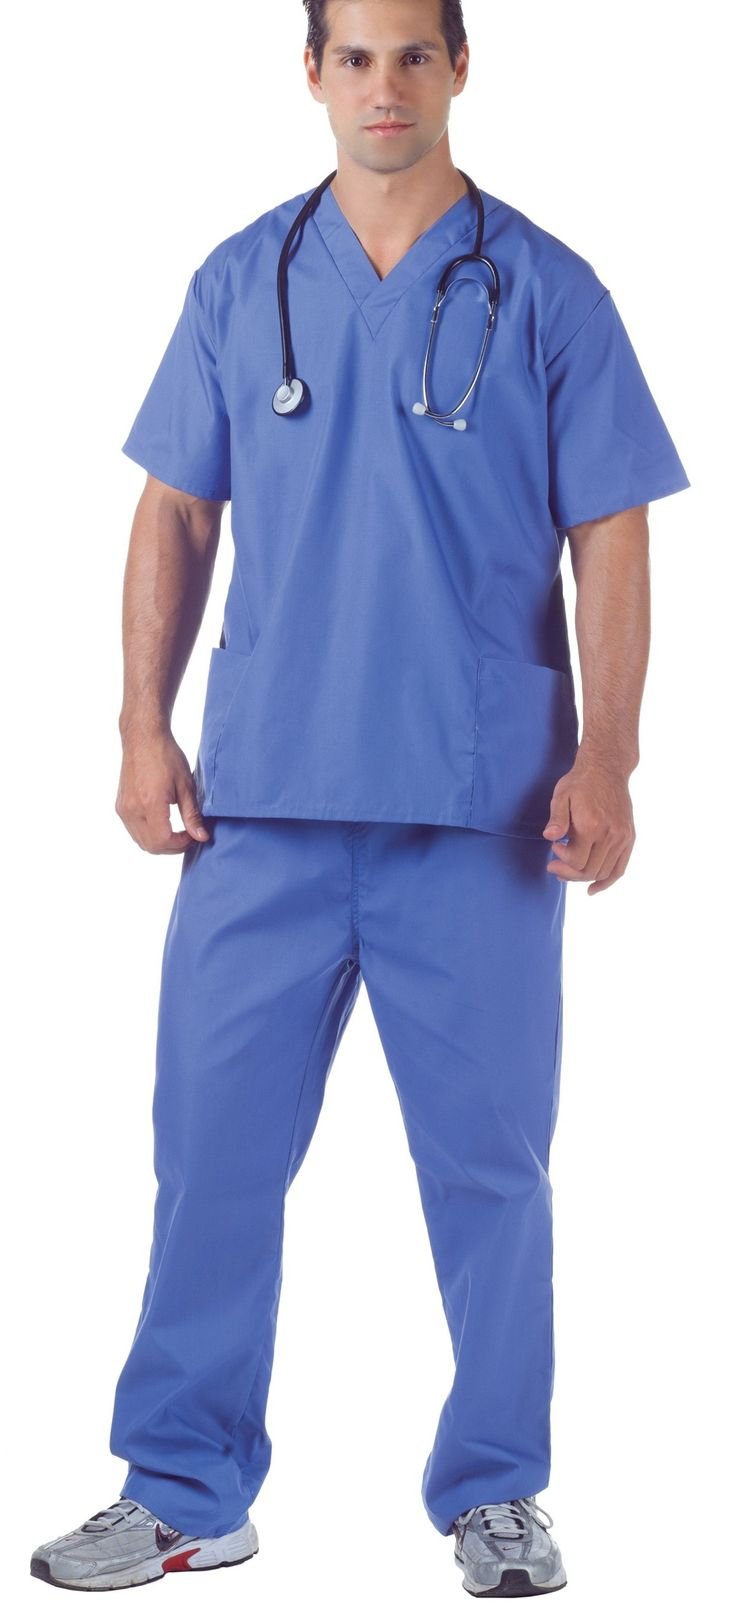 White apron doctors - Buy Blue Doctors Scrub Suit With Top And Bottom Online B2bmonk